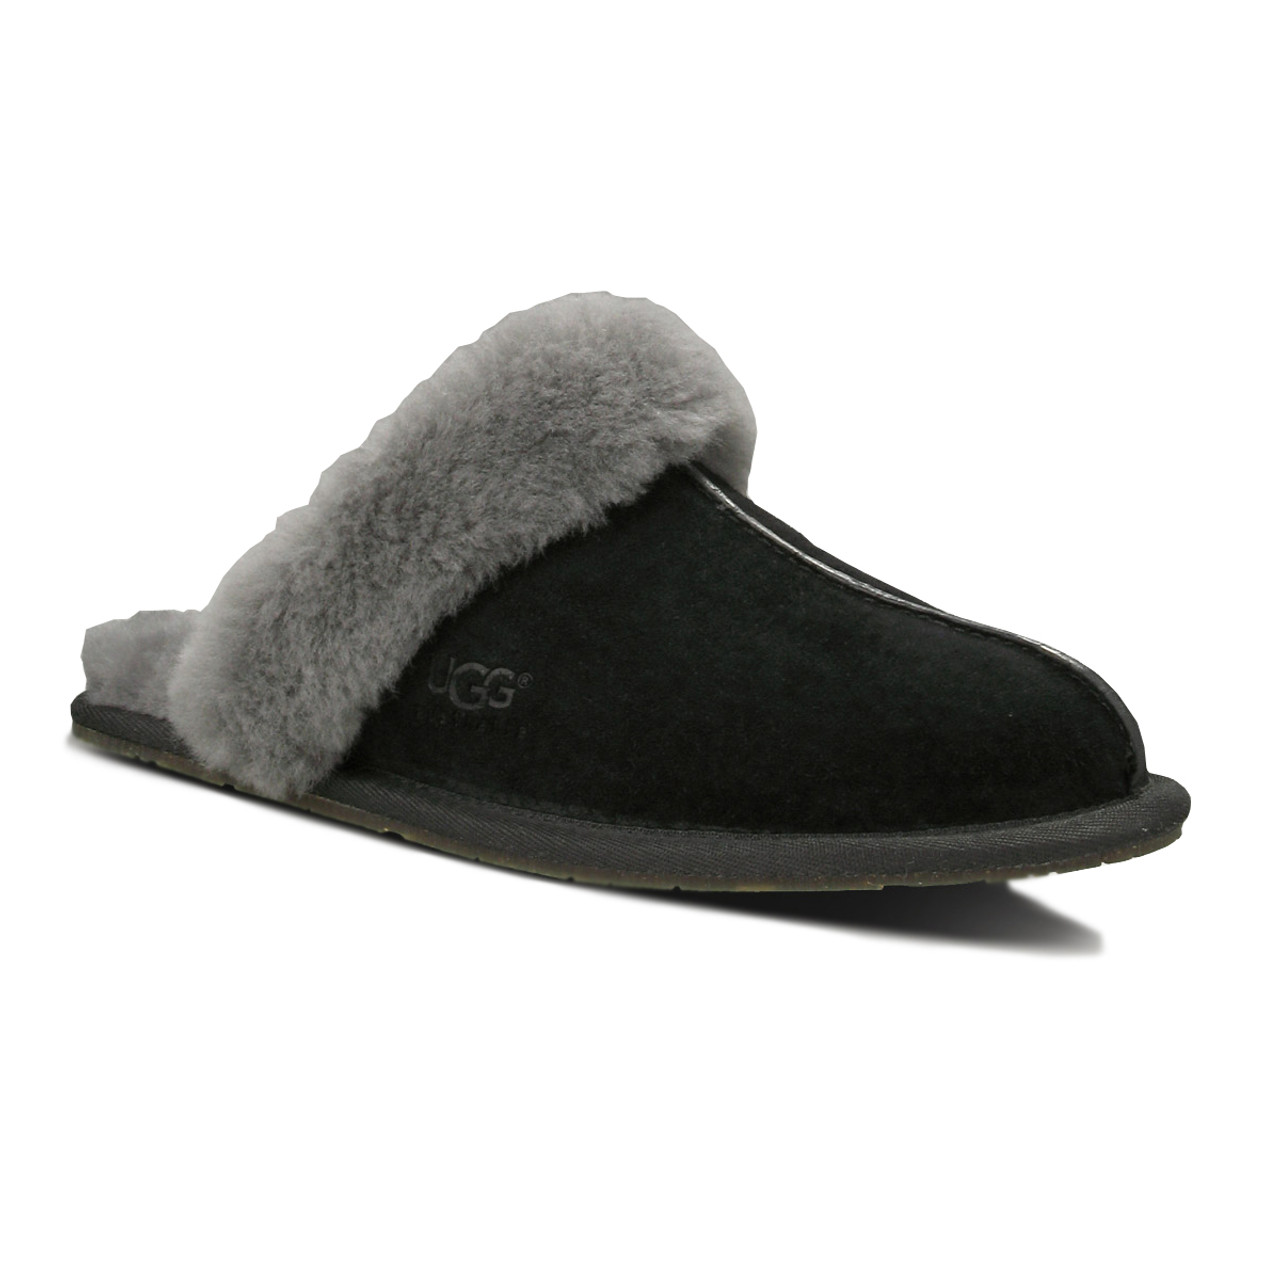 cb75d530af8e UGG Scuffette II Slippers Black Grey Ladies Sheepskin Suede Slippers - Shop  now   Shoolu